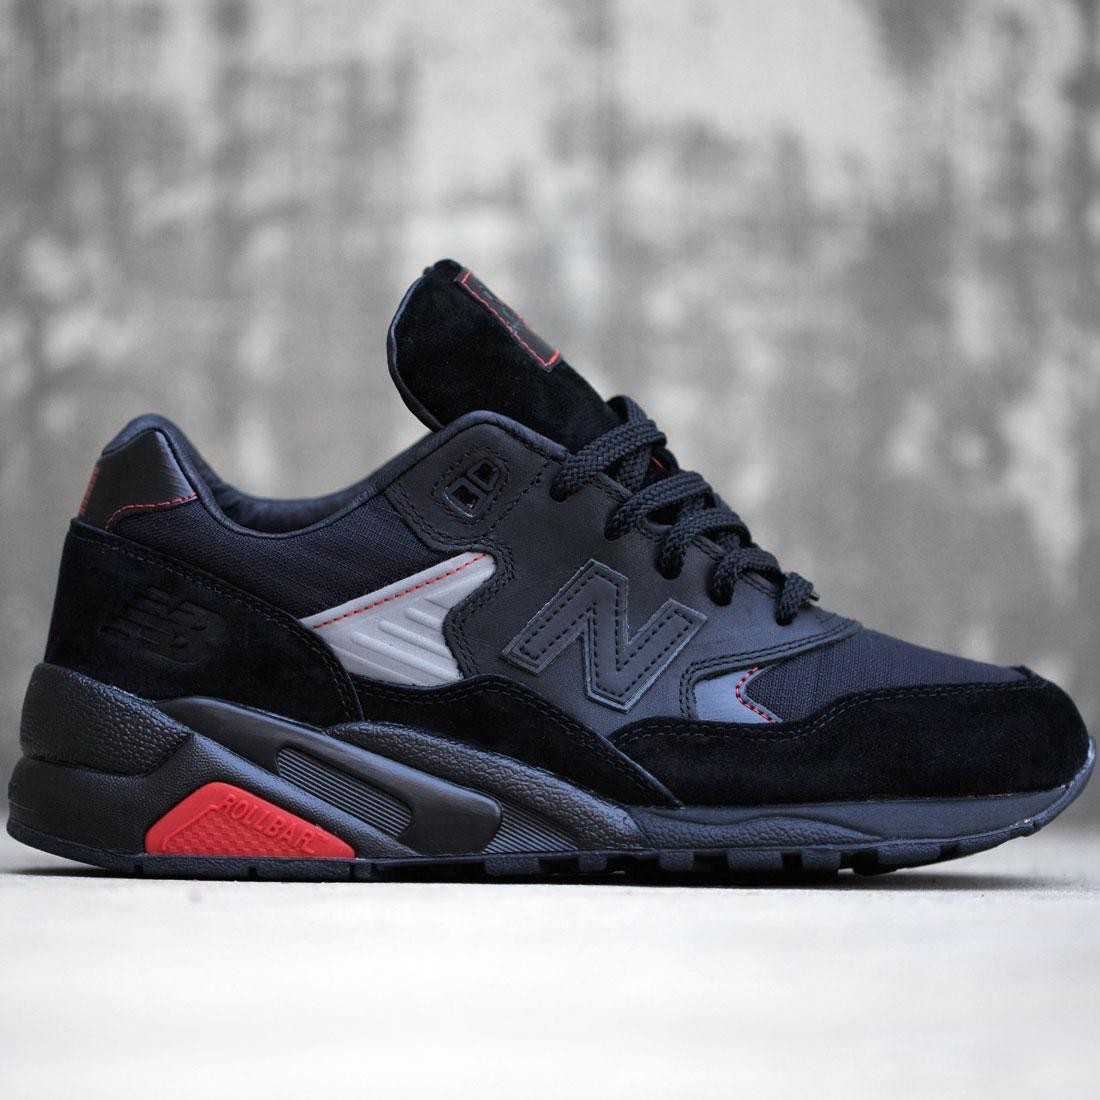 alojamiento misil paleta  Limited Time Deals·New Deals Everyday new balance joes, OFF 79%,Buy!